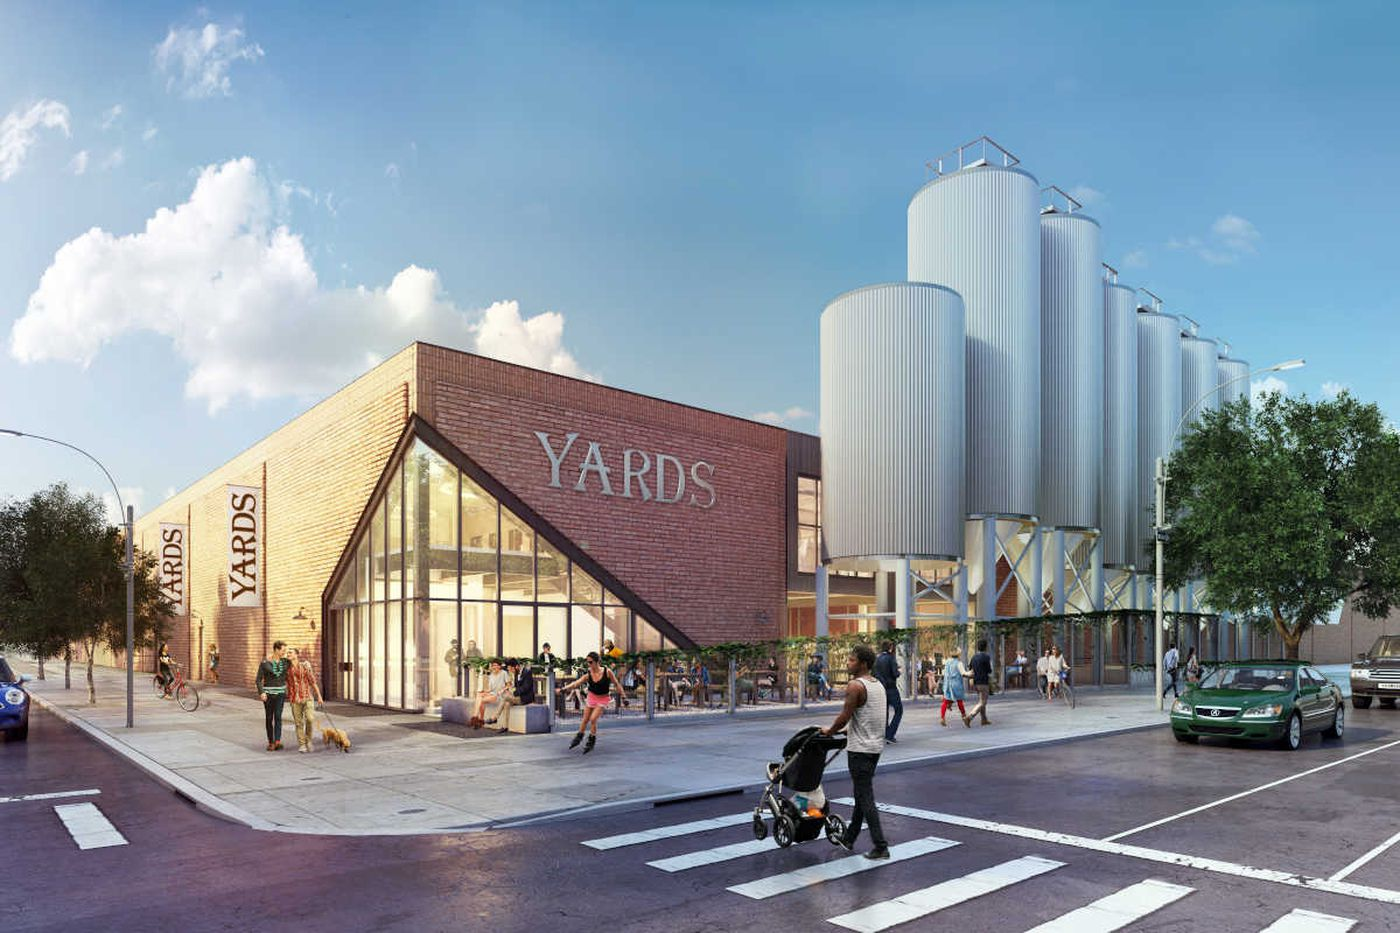 Yards Brewing on track to open new space this year after closing on loan